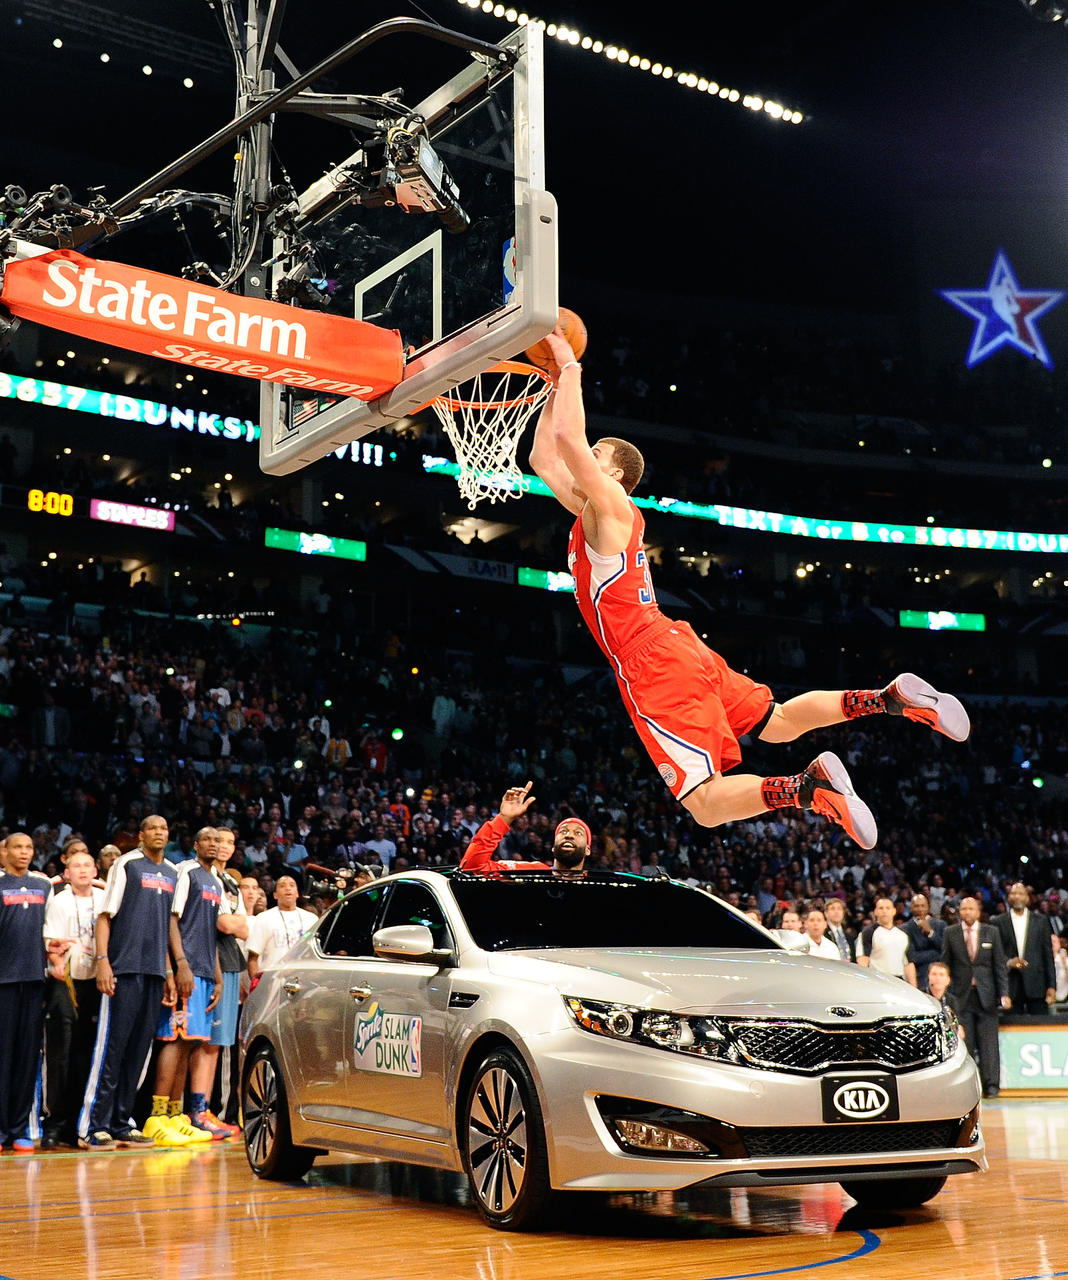 Blake Griffin Dunks Over A Car In The Dunk Contest : NBAimages